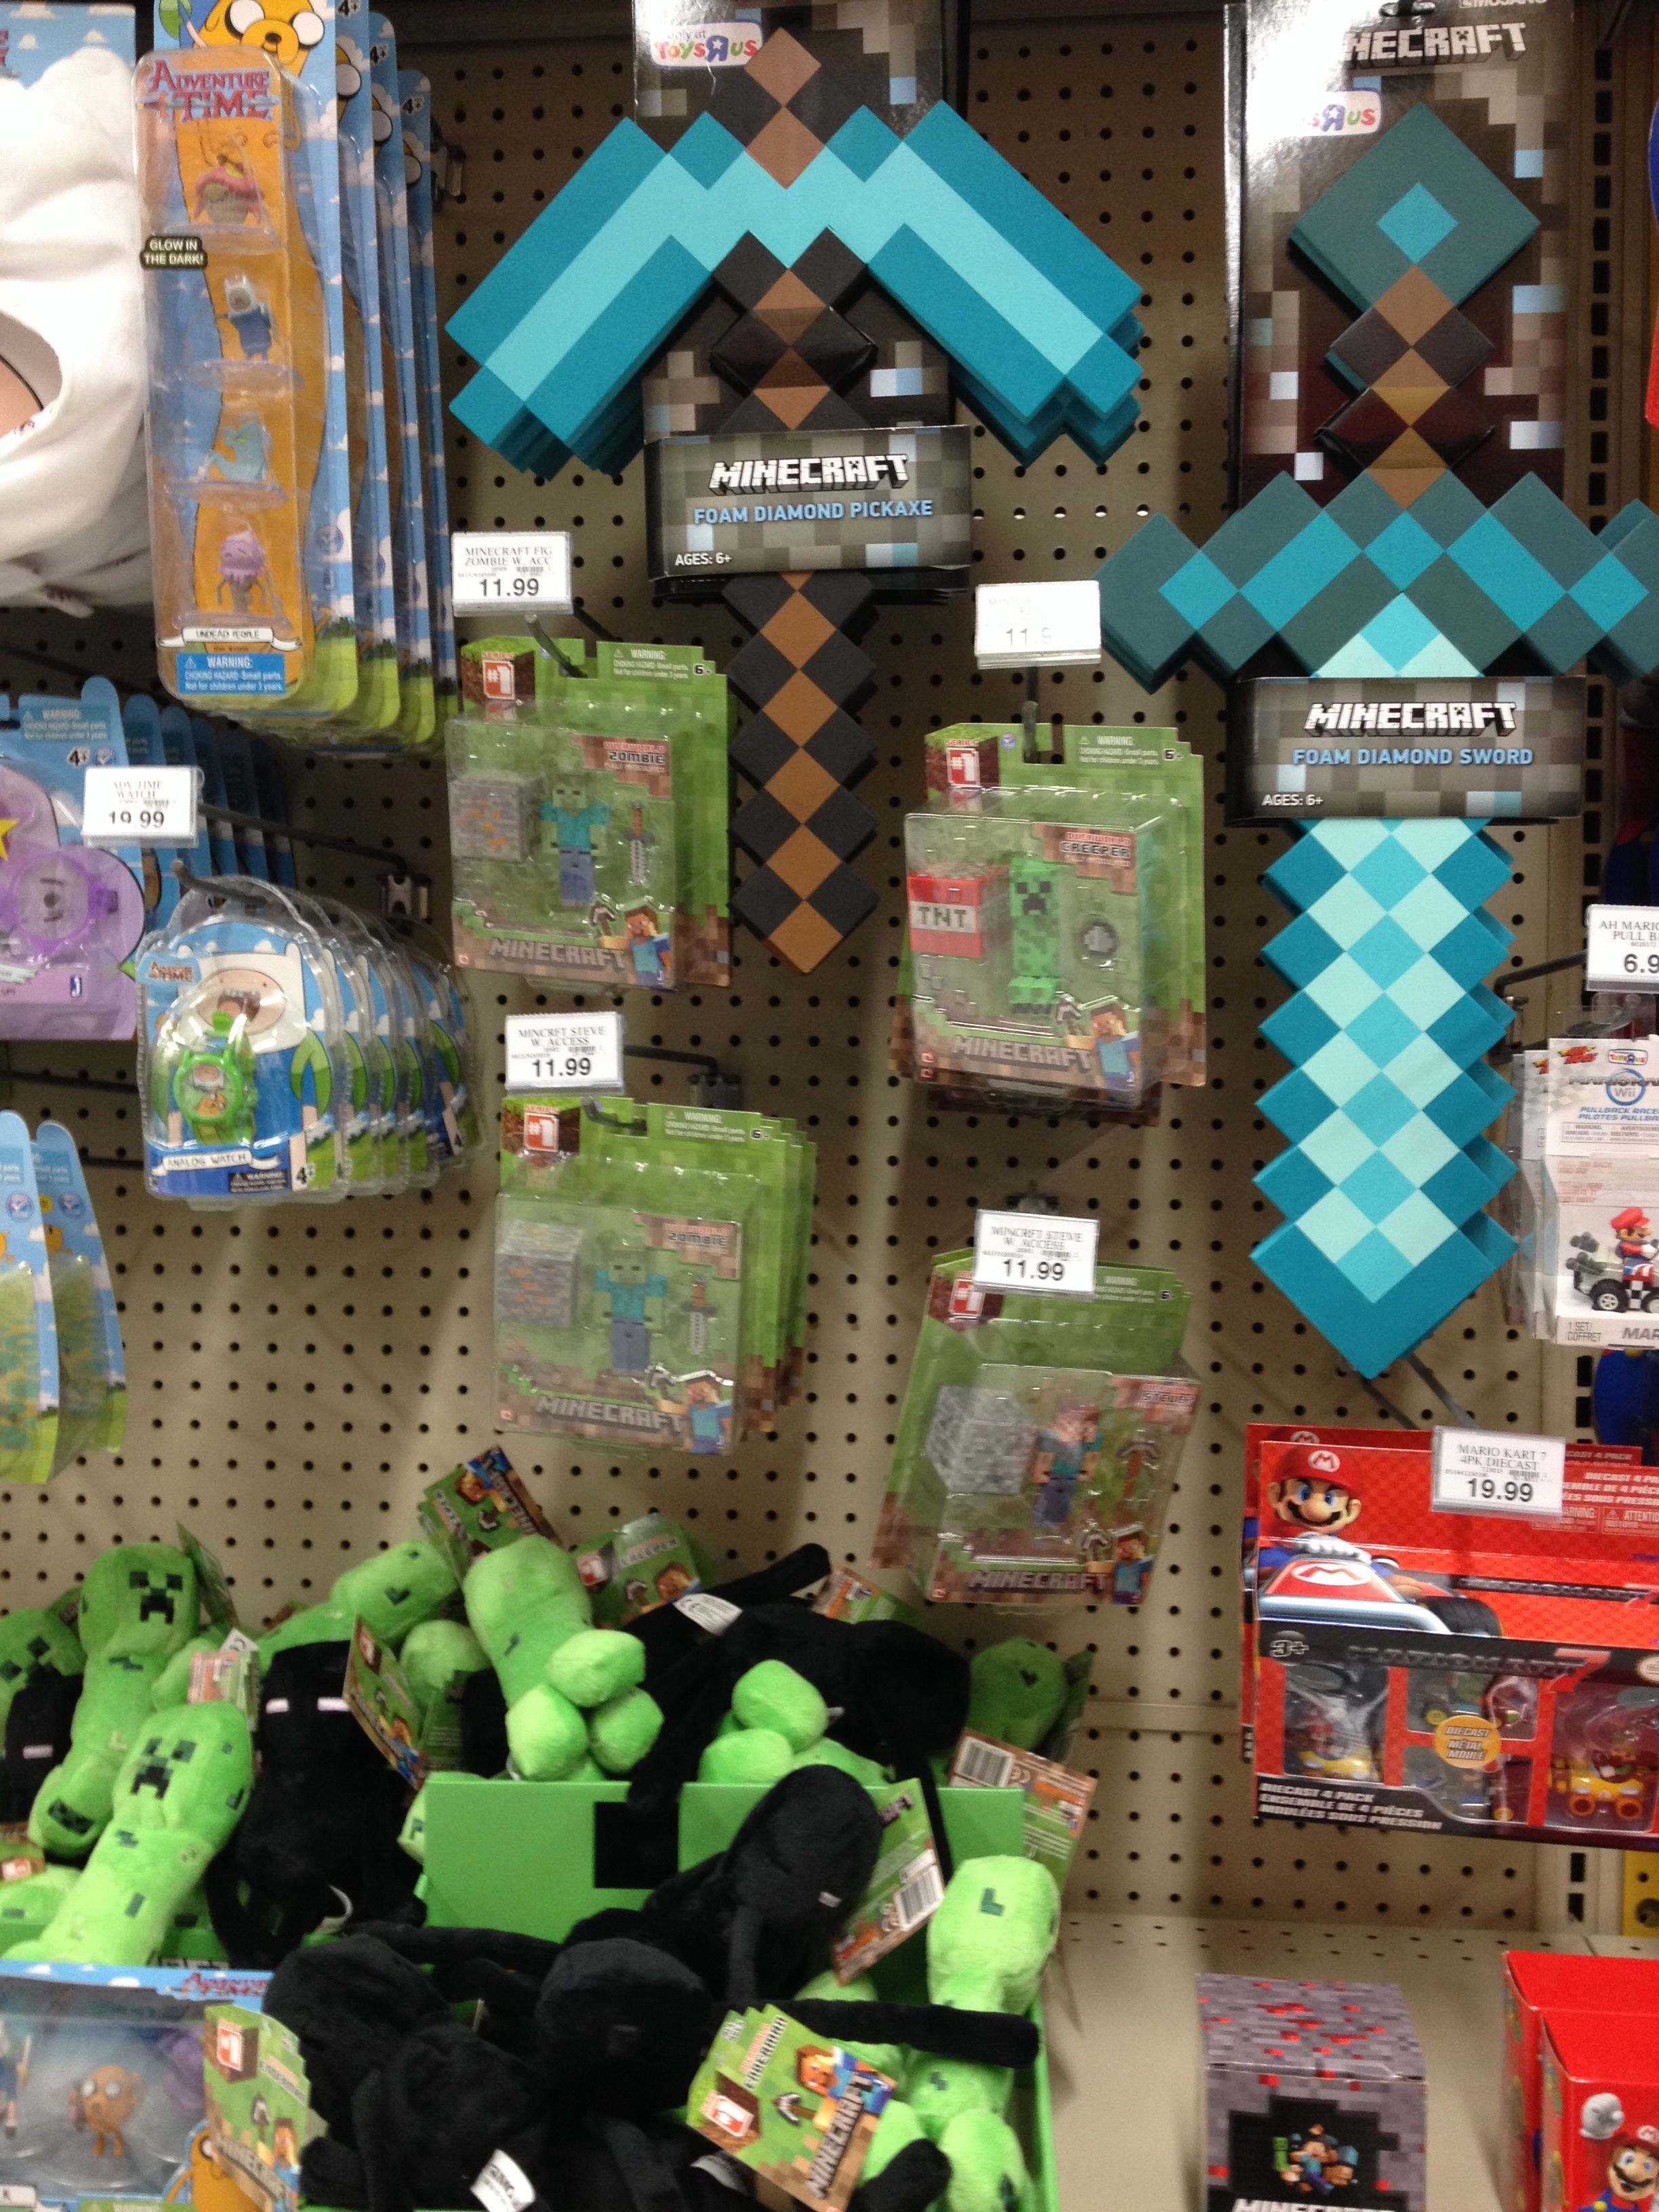 Walmart Minecraft Toys For Boys : Gift ideas for zack minecraft stuff toys r us hey